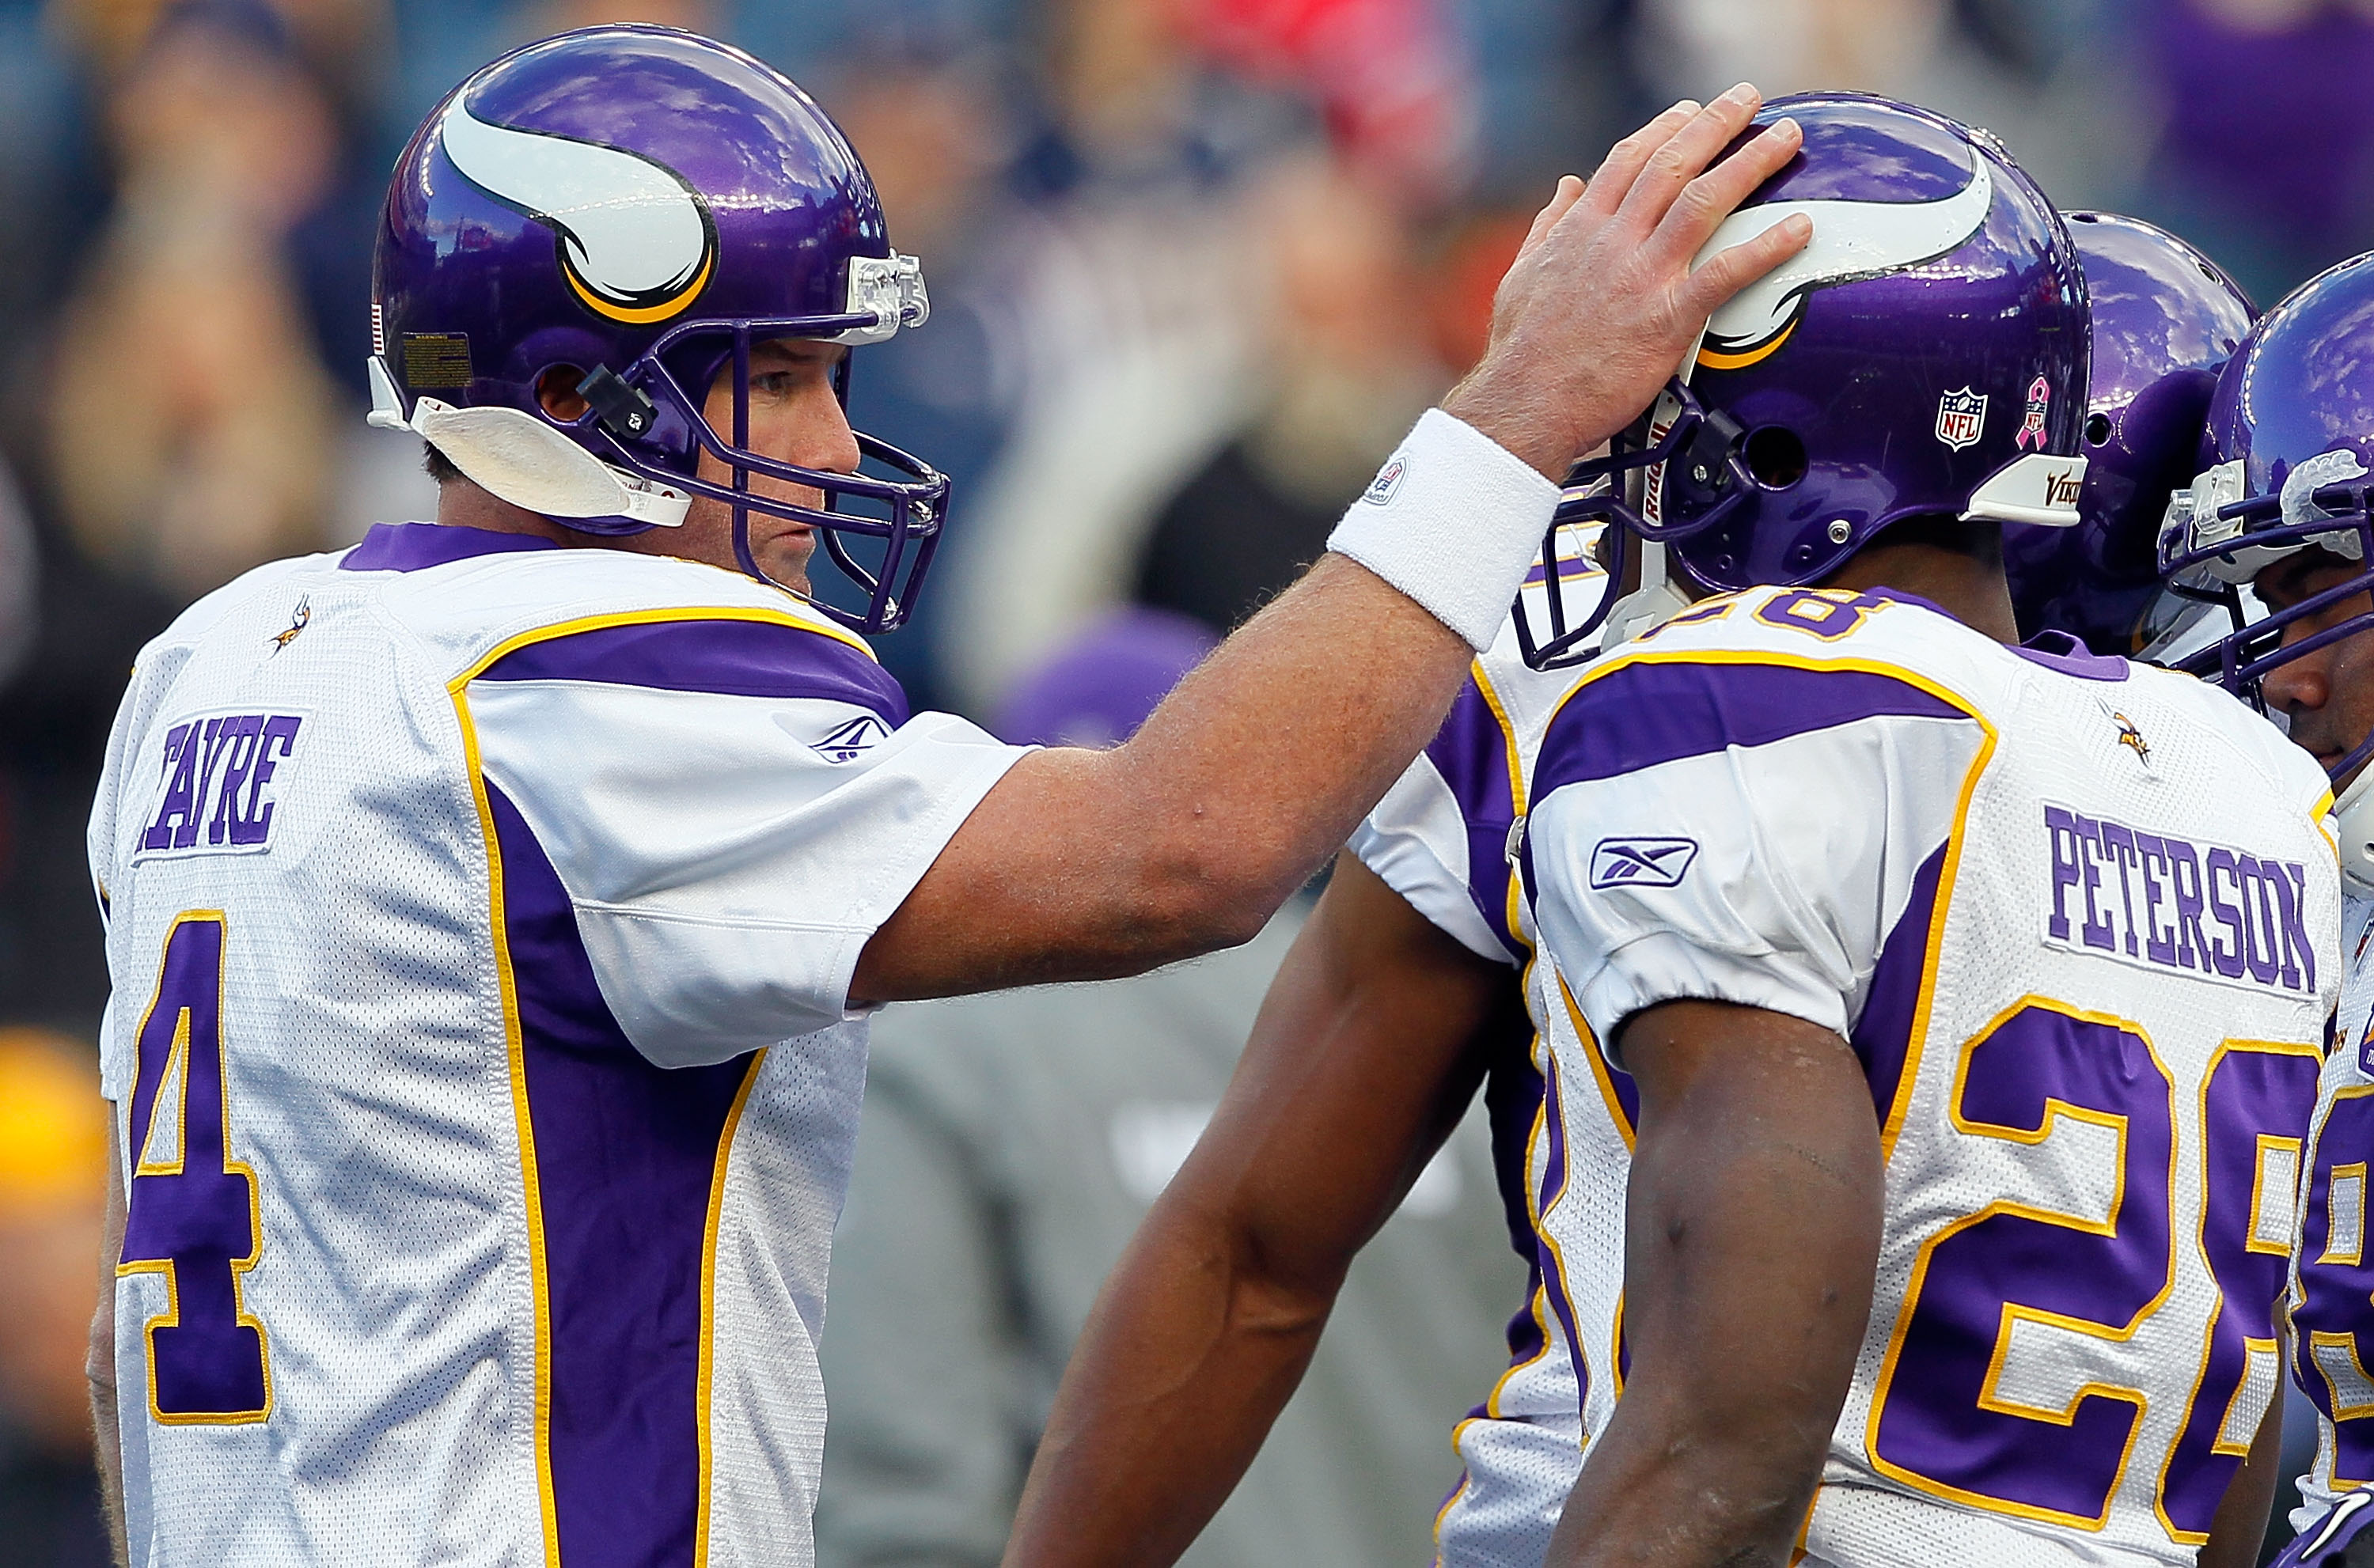 FOXBORO, MA - OCTOBER 31:  Brett Favre #4 of the Minnesota Vikings interacts with teammate Adrian Peterson #28 before a game against the New England Patriots at Gillette Stadium on October 31, 2010 in Foxboro, Massachusetts. (Photo by Jim Rogash/Getty Ima